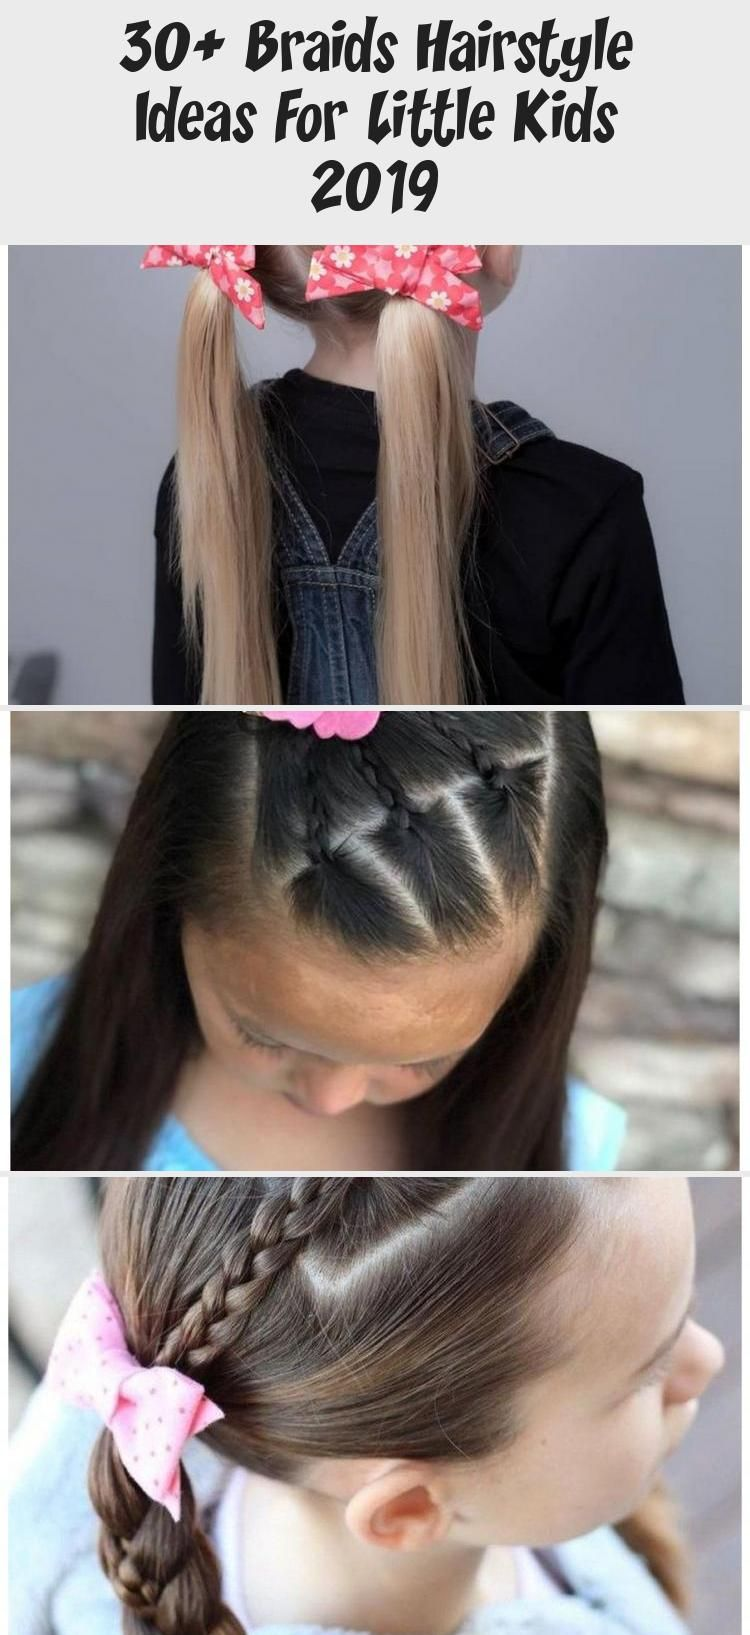 Finding Braids Hairstyle Ideas For Little Kids Online Braids Hairstyle Ideas For Little Kids In 2020 Lace Beach Wedding Dress Beach Wedding Dress Quick Wedding Dresses